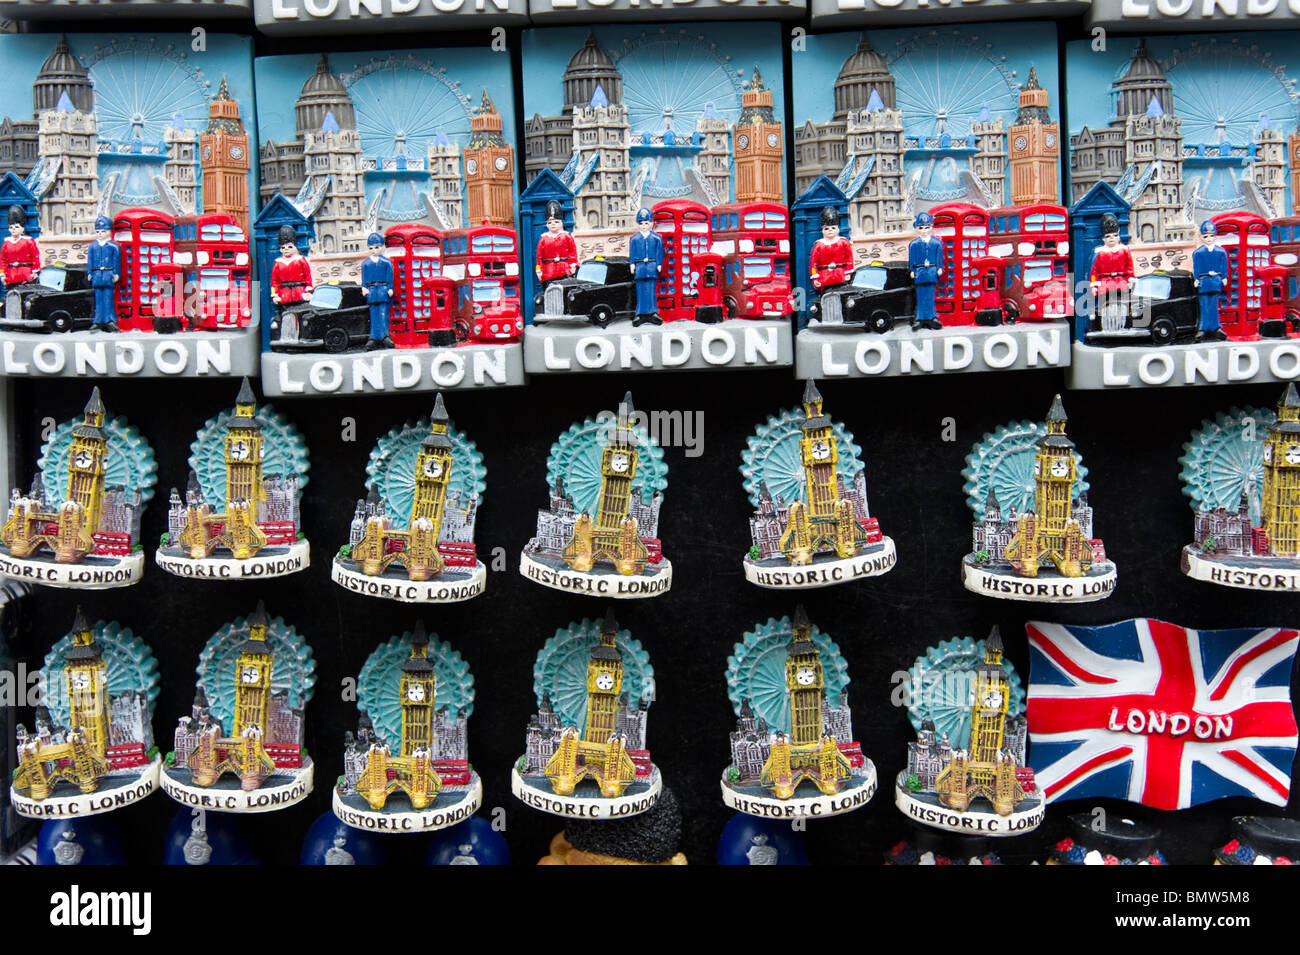 Fridge magnet souvenirs of famous London sights, England, Britain, UK - Stock Image